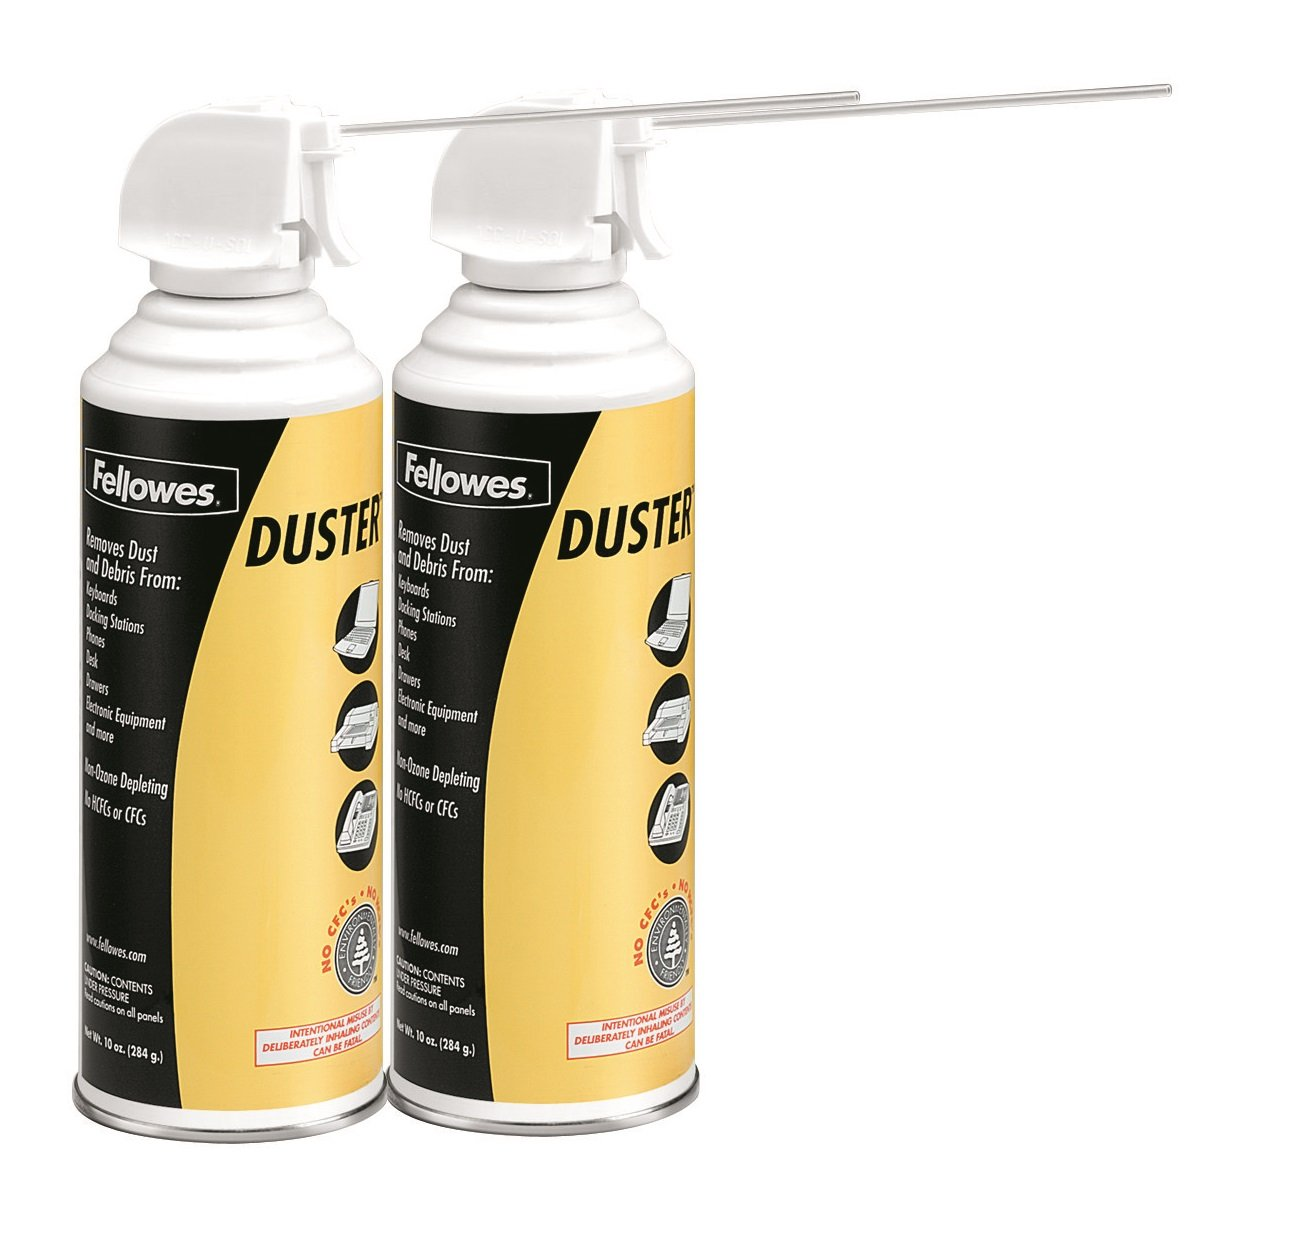 Fellowes Compressed Air Duster Cleaning Spray, 152A, 10oz, 2-Pack (9963201) by Fellowes